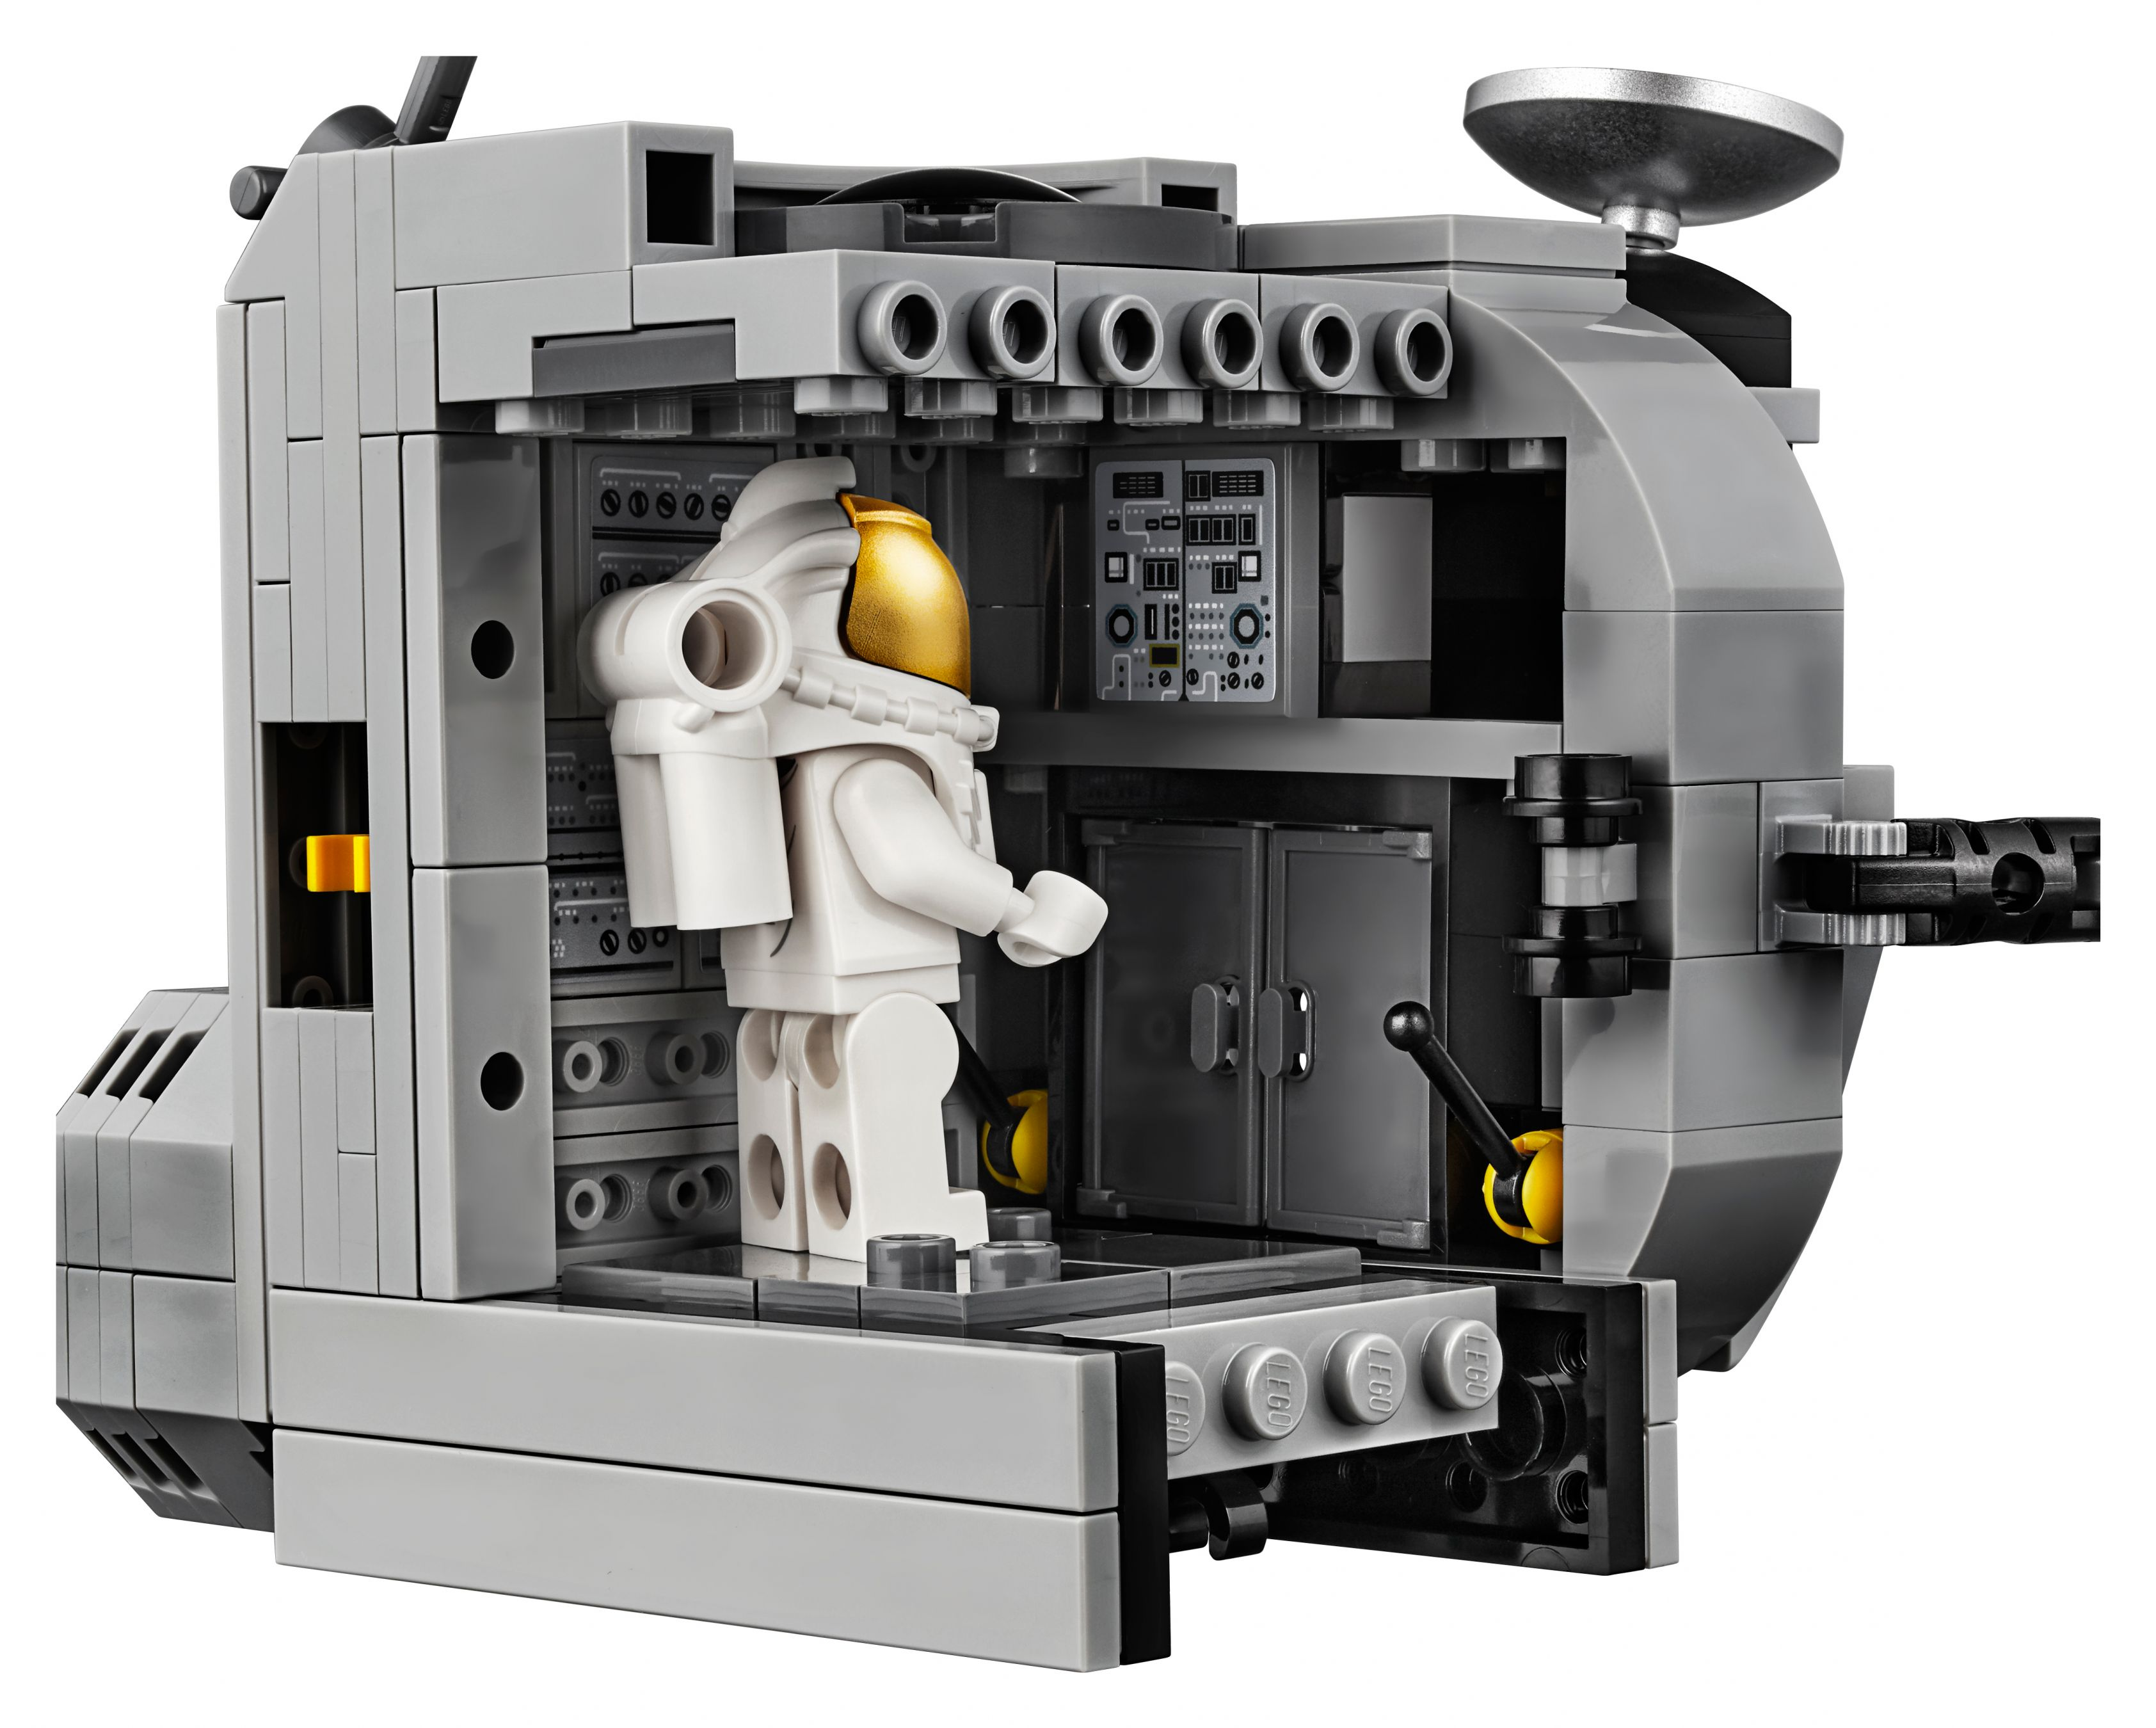 LEGO Advanced Models 10266 NASA Apollo 11 Mondlandefähre LEGO_10266_alt11.jpg